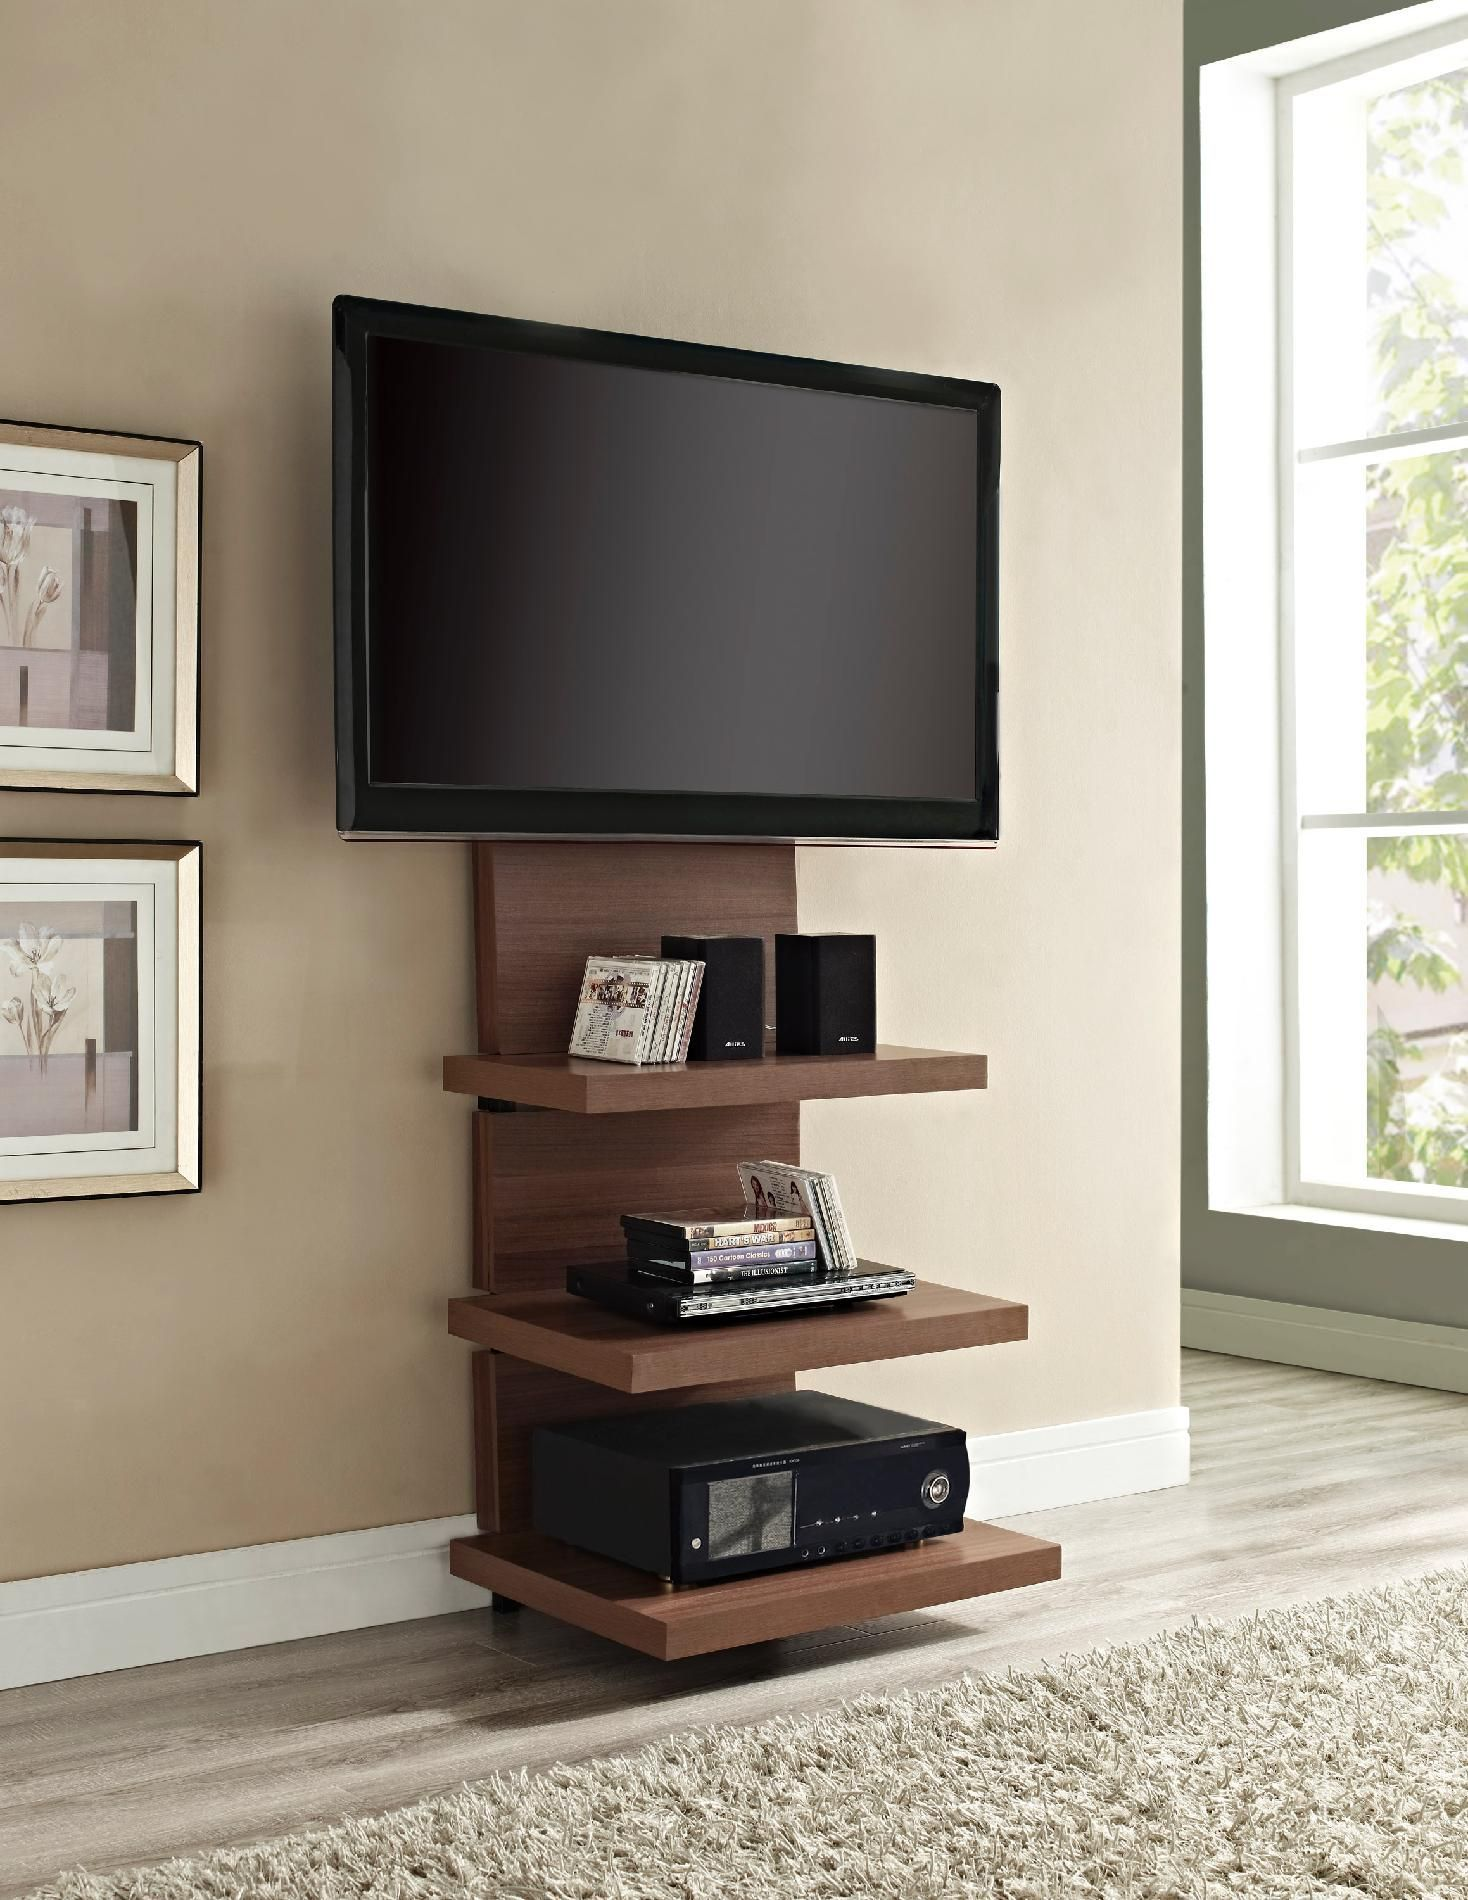 Long Modern Tv Cabinets 2021 In 2020 Tv Stand Modern Design Bedroom Tv Wall Wall Tv Stand